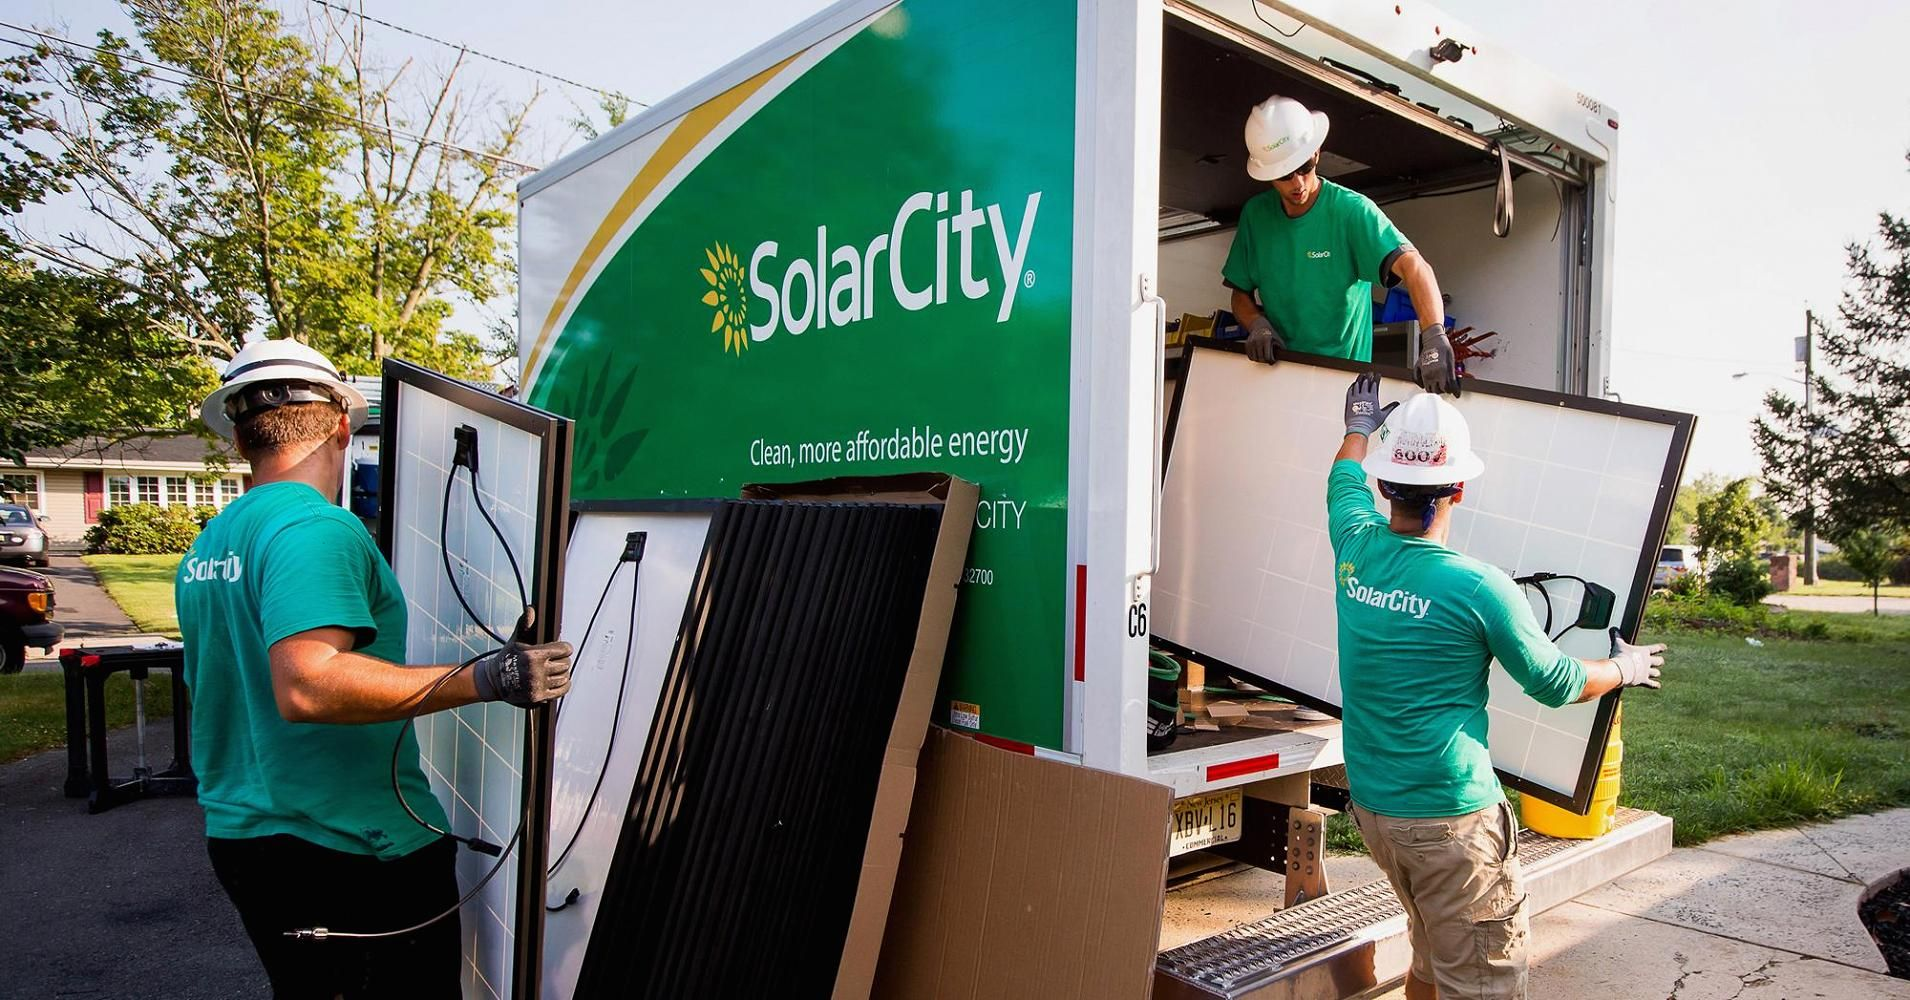 Whole Foods strikes solar panel deal with SolarCity